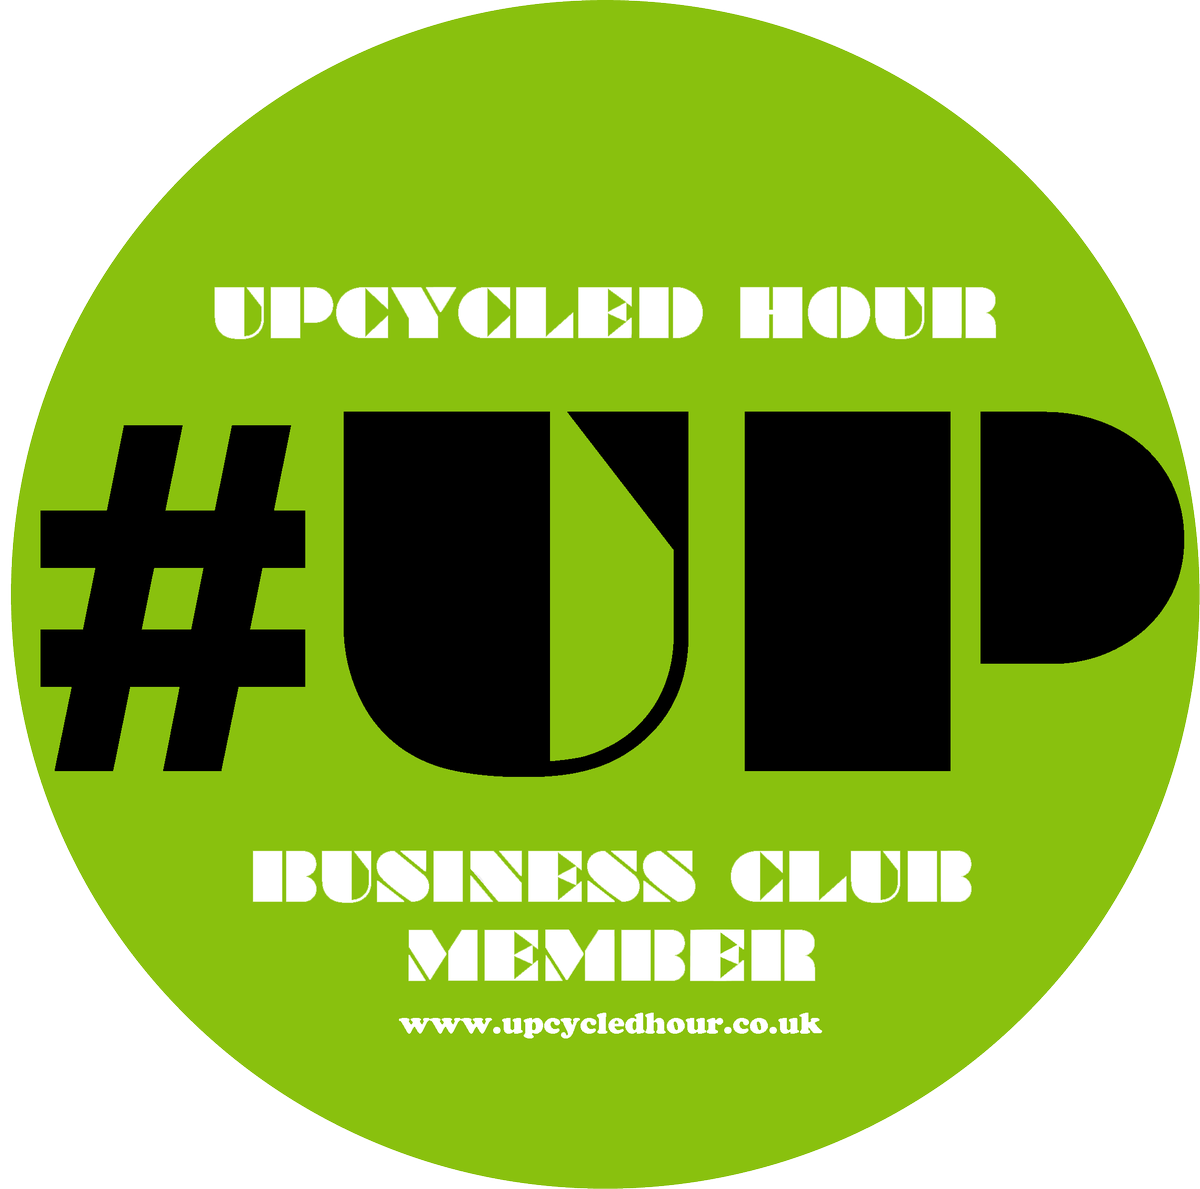 Watch out for the #UpcycledHour #BusinessClub logo ... #elevatingupcycling #strivingforexcellence #creativecommunity #upcycling #upcycled <br>http://pic.twitter.com/267OIzAEMb